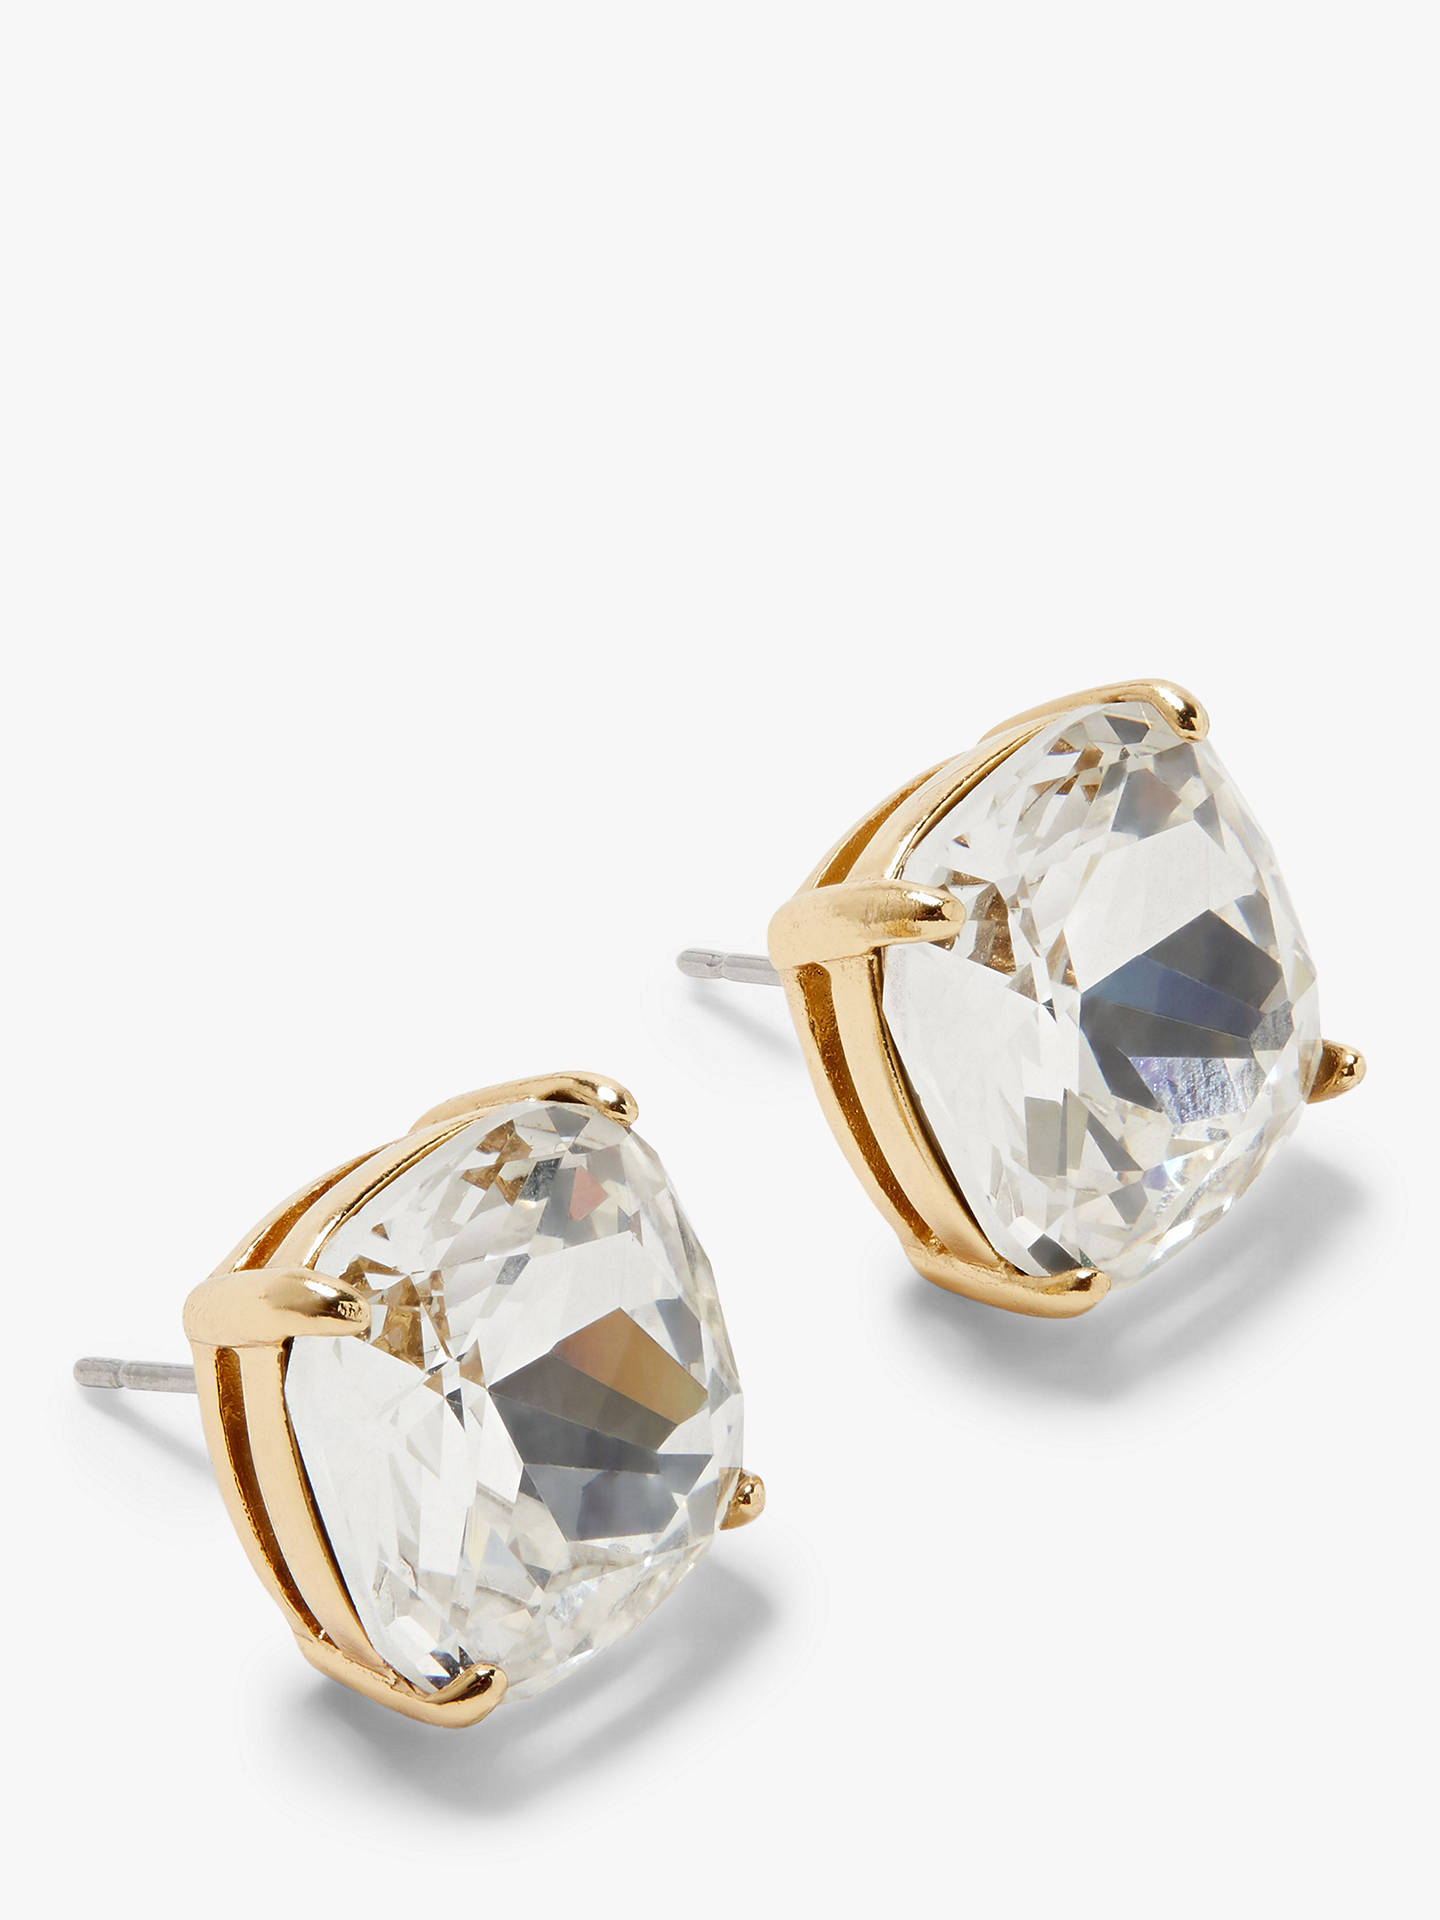 4170d244994e25 Buy kate spade new york Small Square Stud Earrings, White Online at  johnlewis.com ...